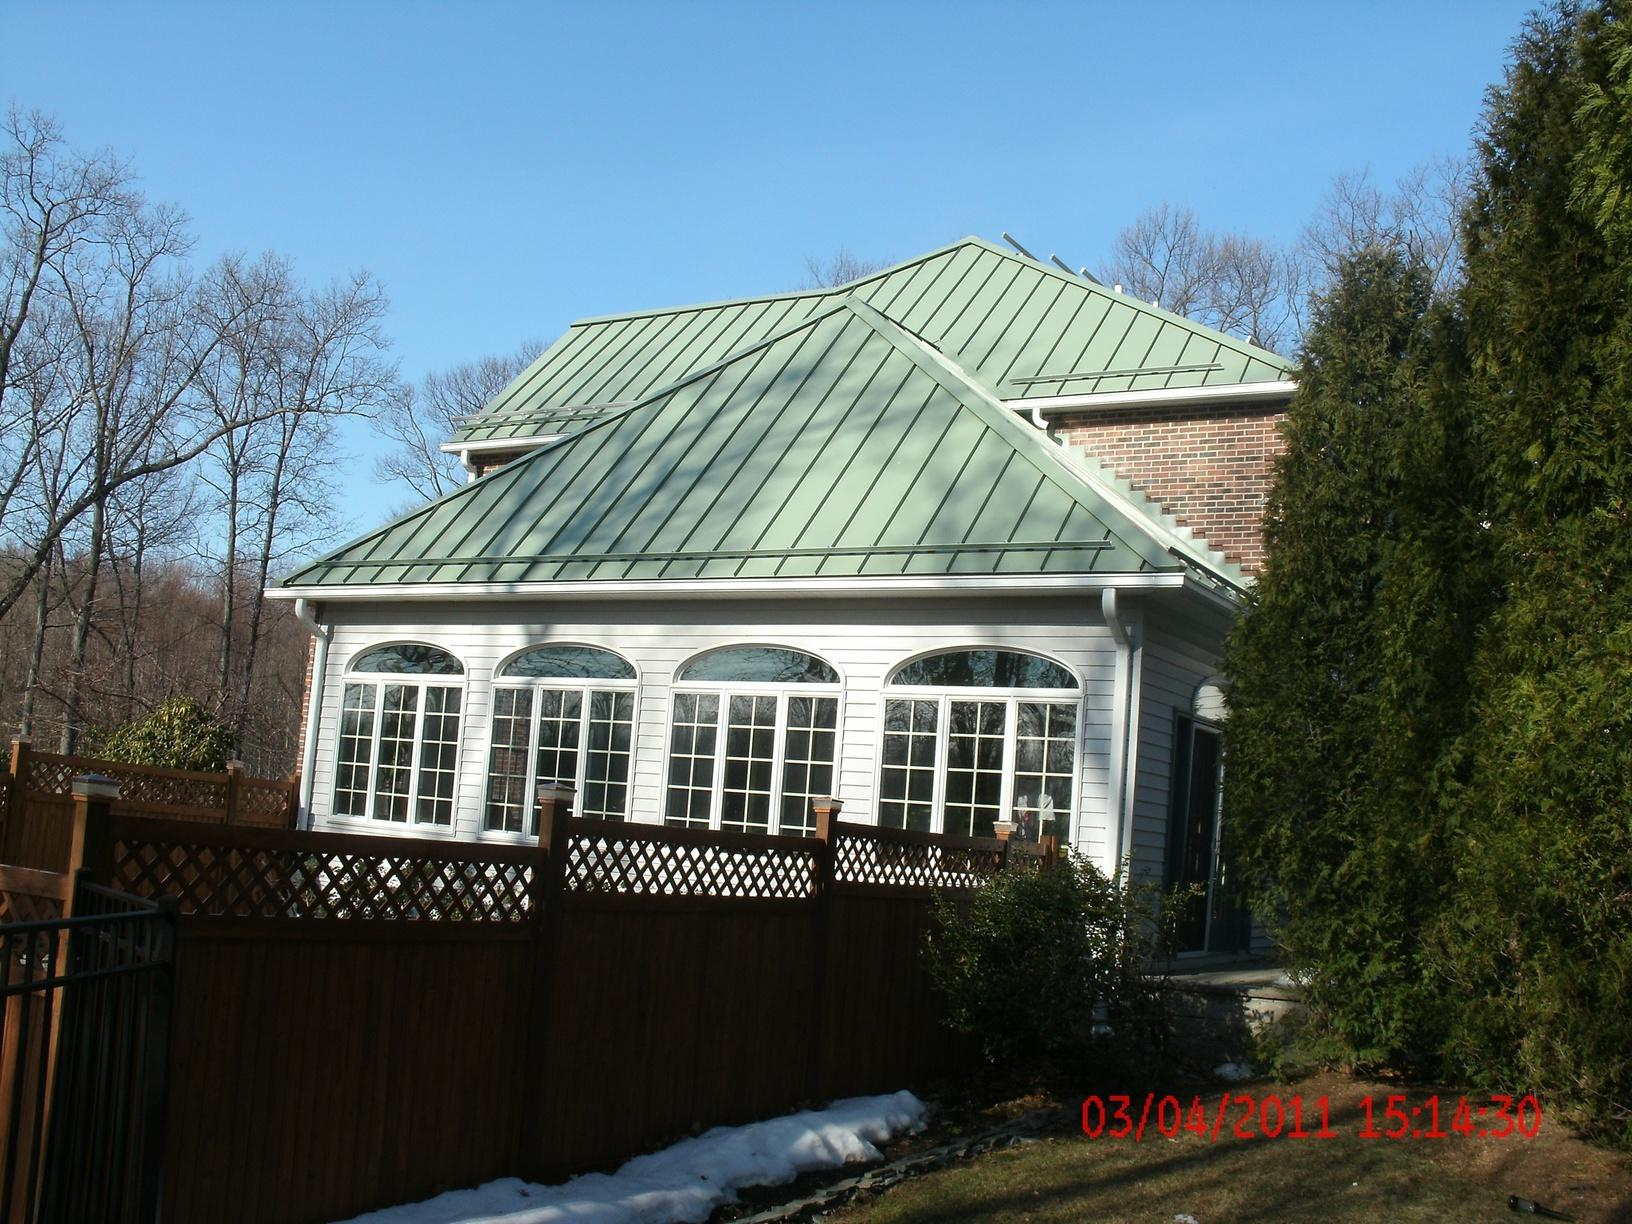 Chester, NJ Standing Seam Aged Copper Roof